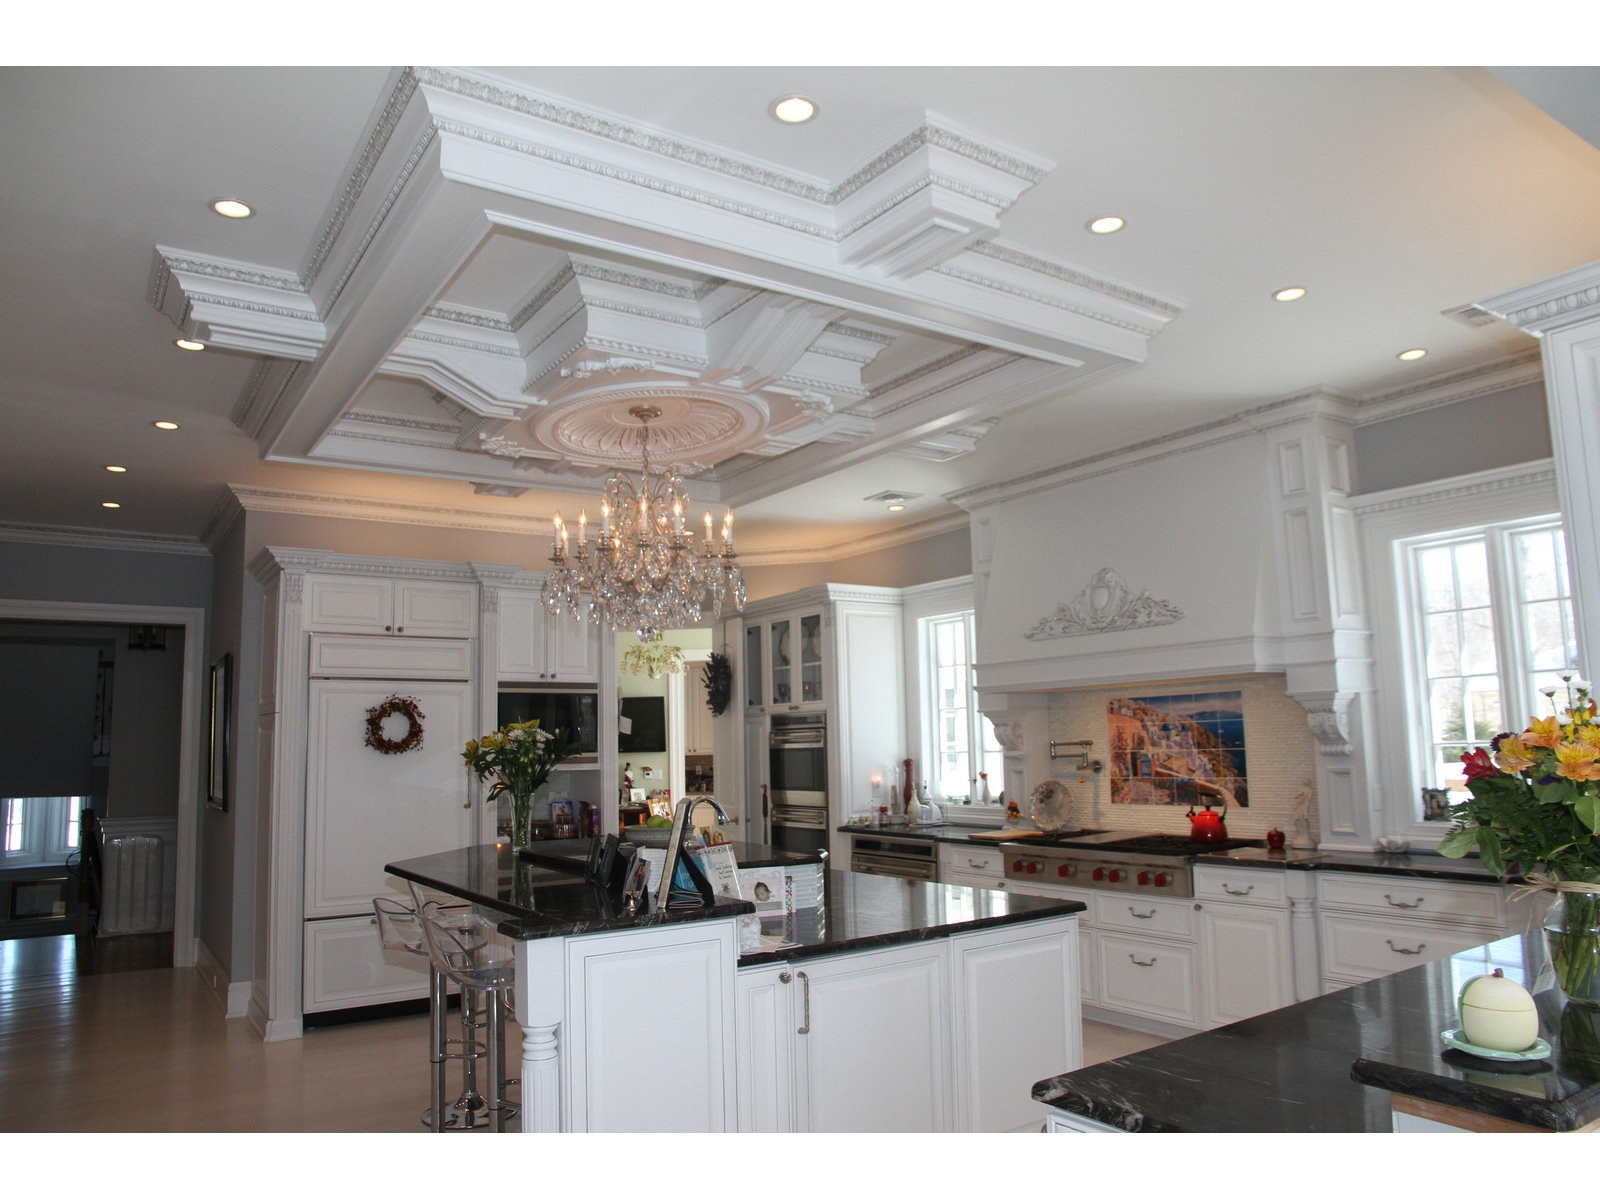 Contemporary Crown Molding For Kitchen Cabinets Kitchen Cabinets Kitchen Cabinets By Crown Molding Nj